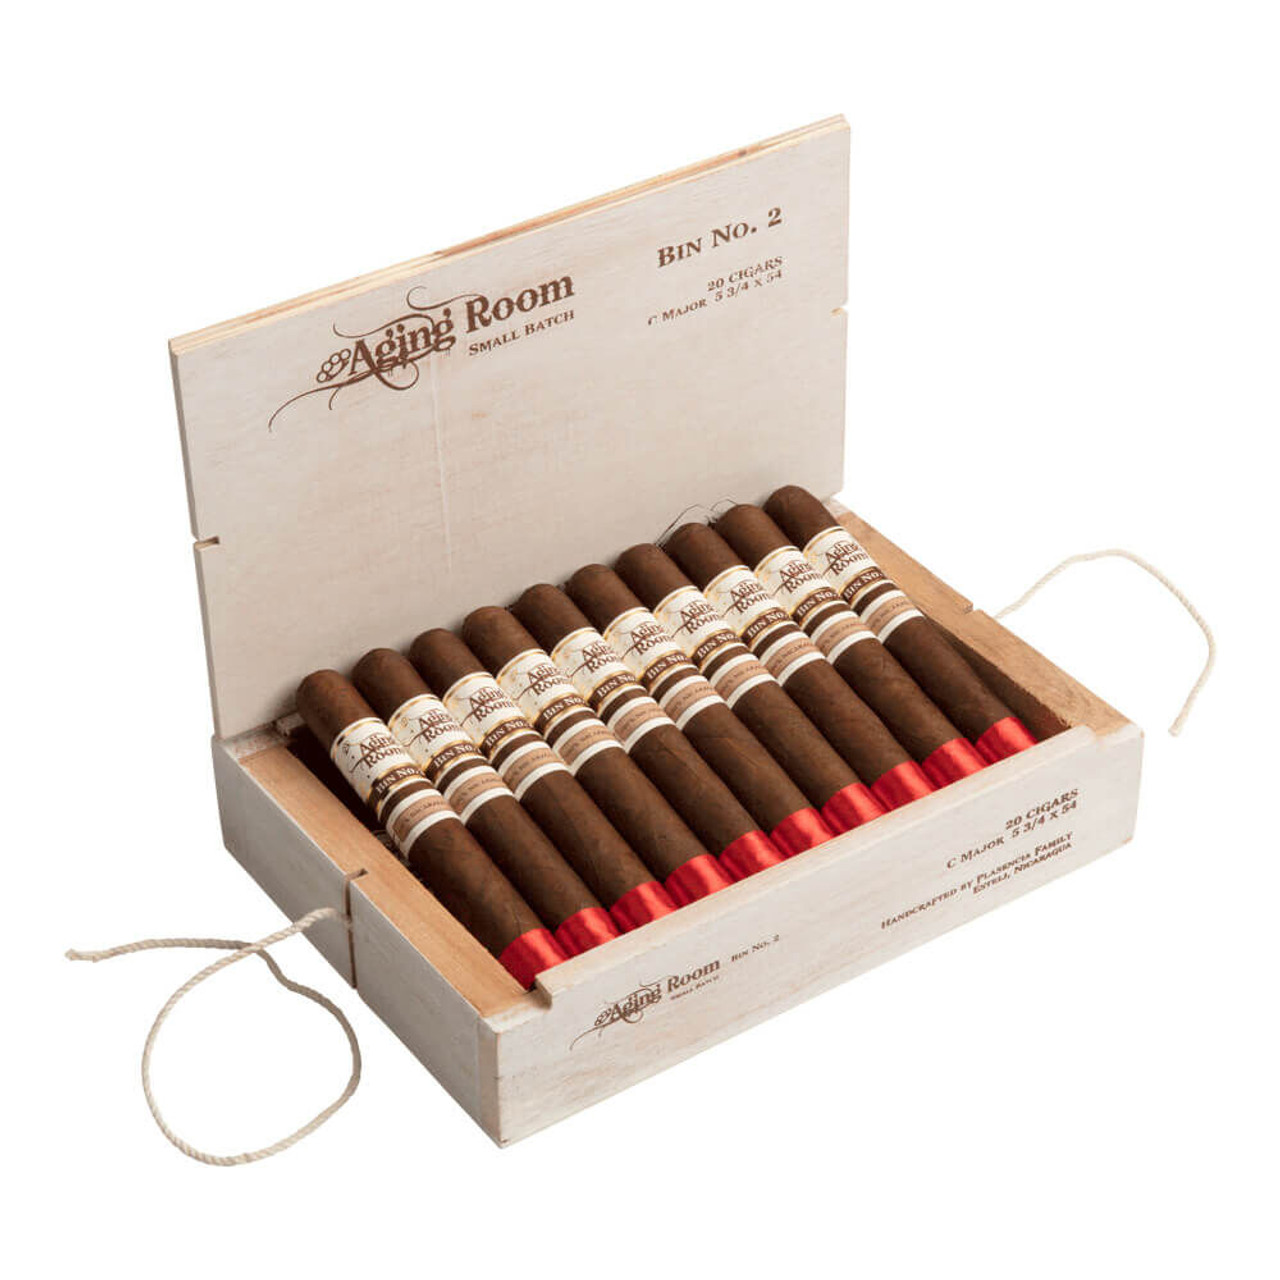 Aging Room Bin No. 2 C Major Cigars - 5.75 x 54 (Box of 20)